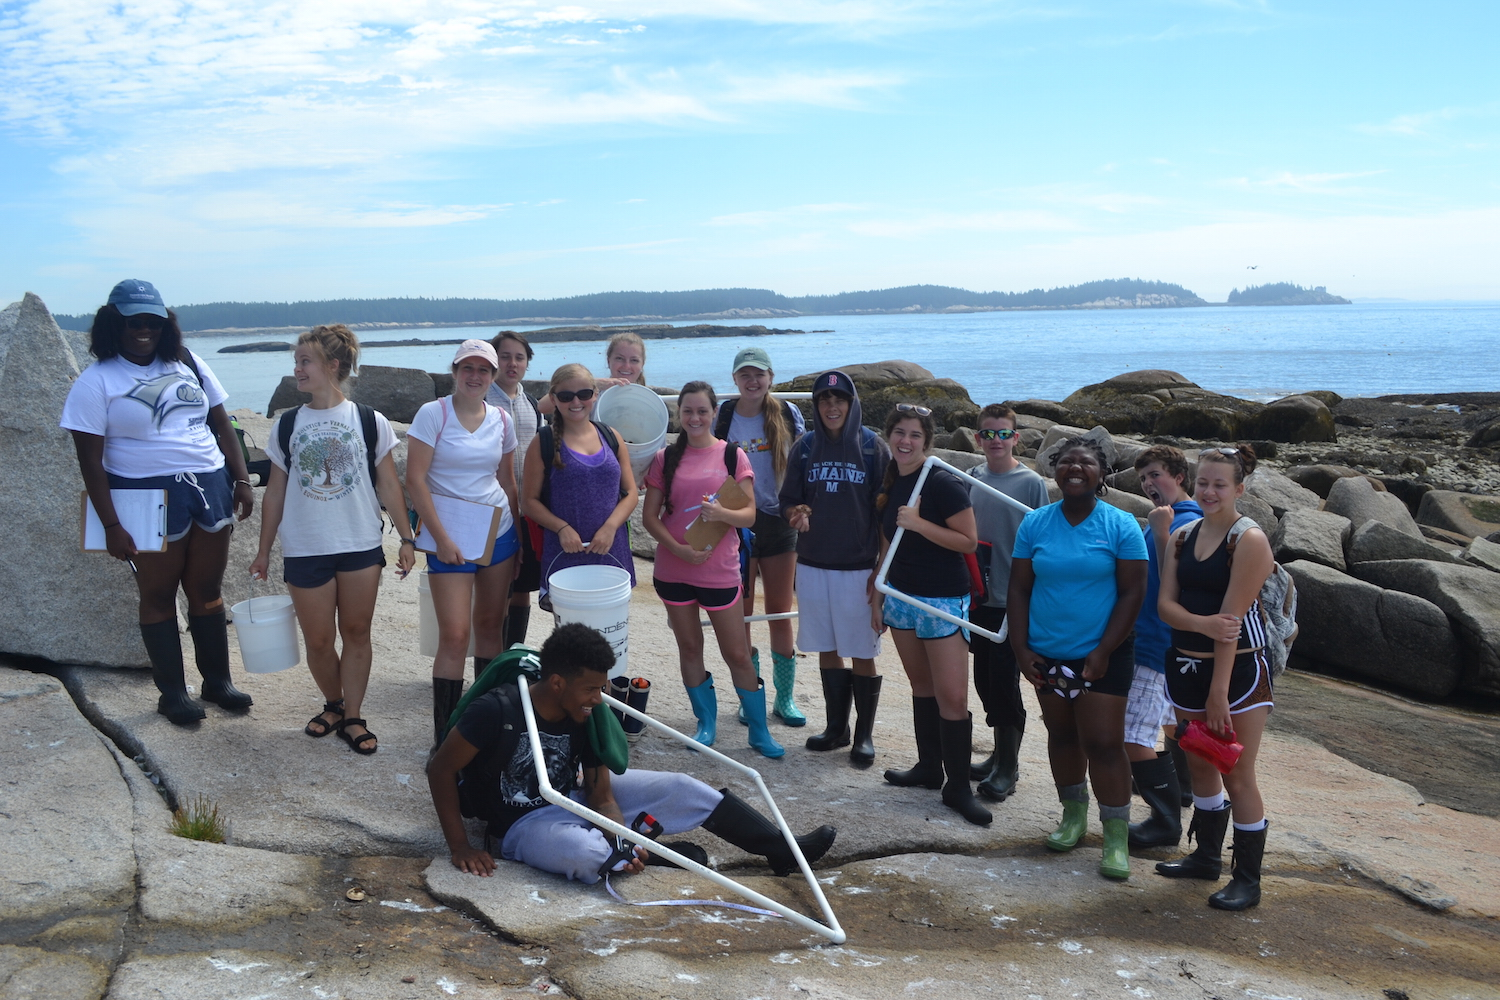 The crew after a successful morning collecting data in the intertidal at Two Bush Island